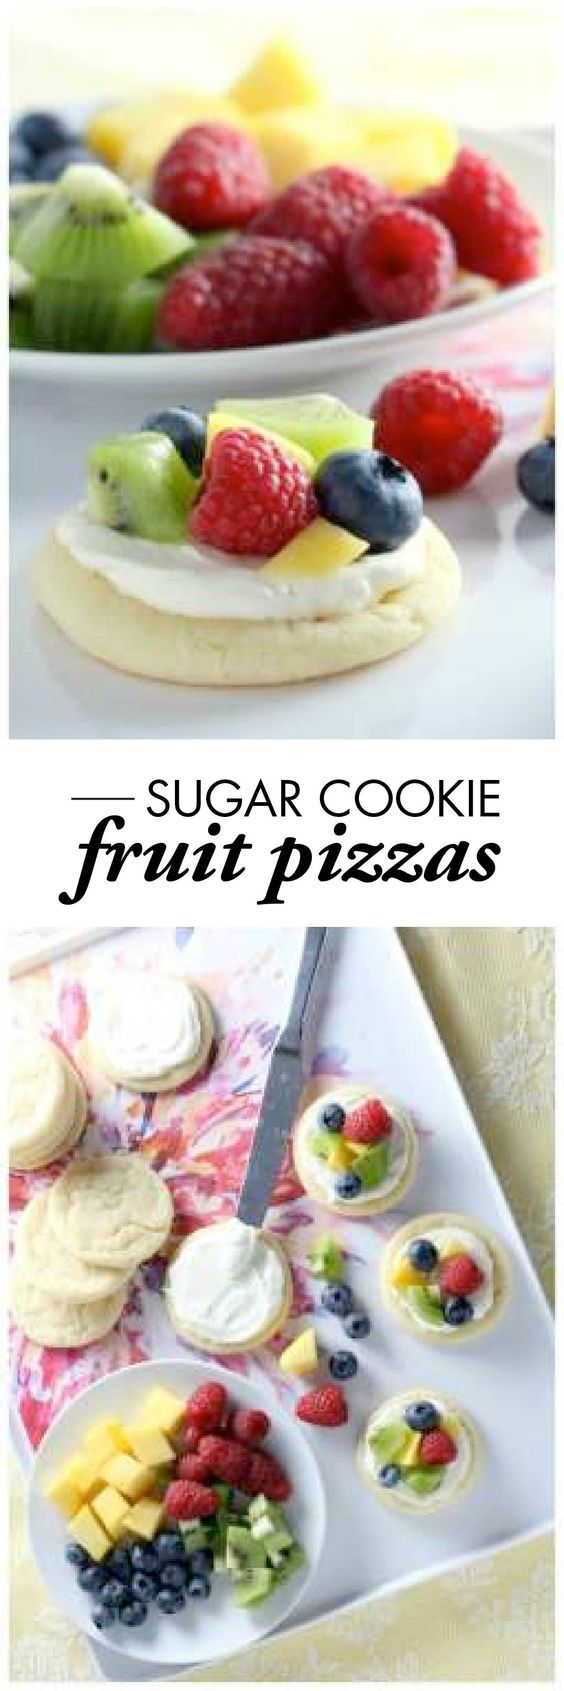 Pizza, Sugar cookie fruit pizza and Desserts on Pinterest